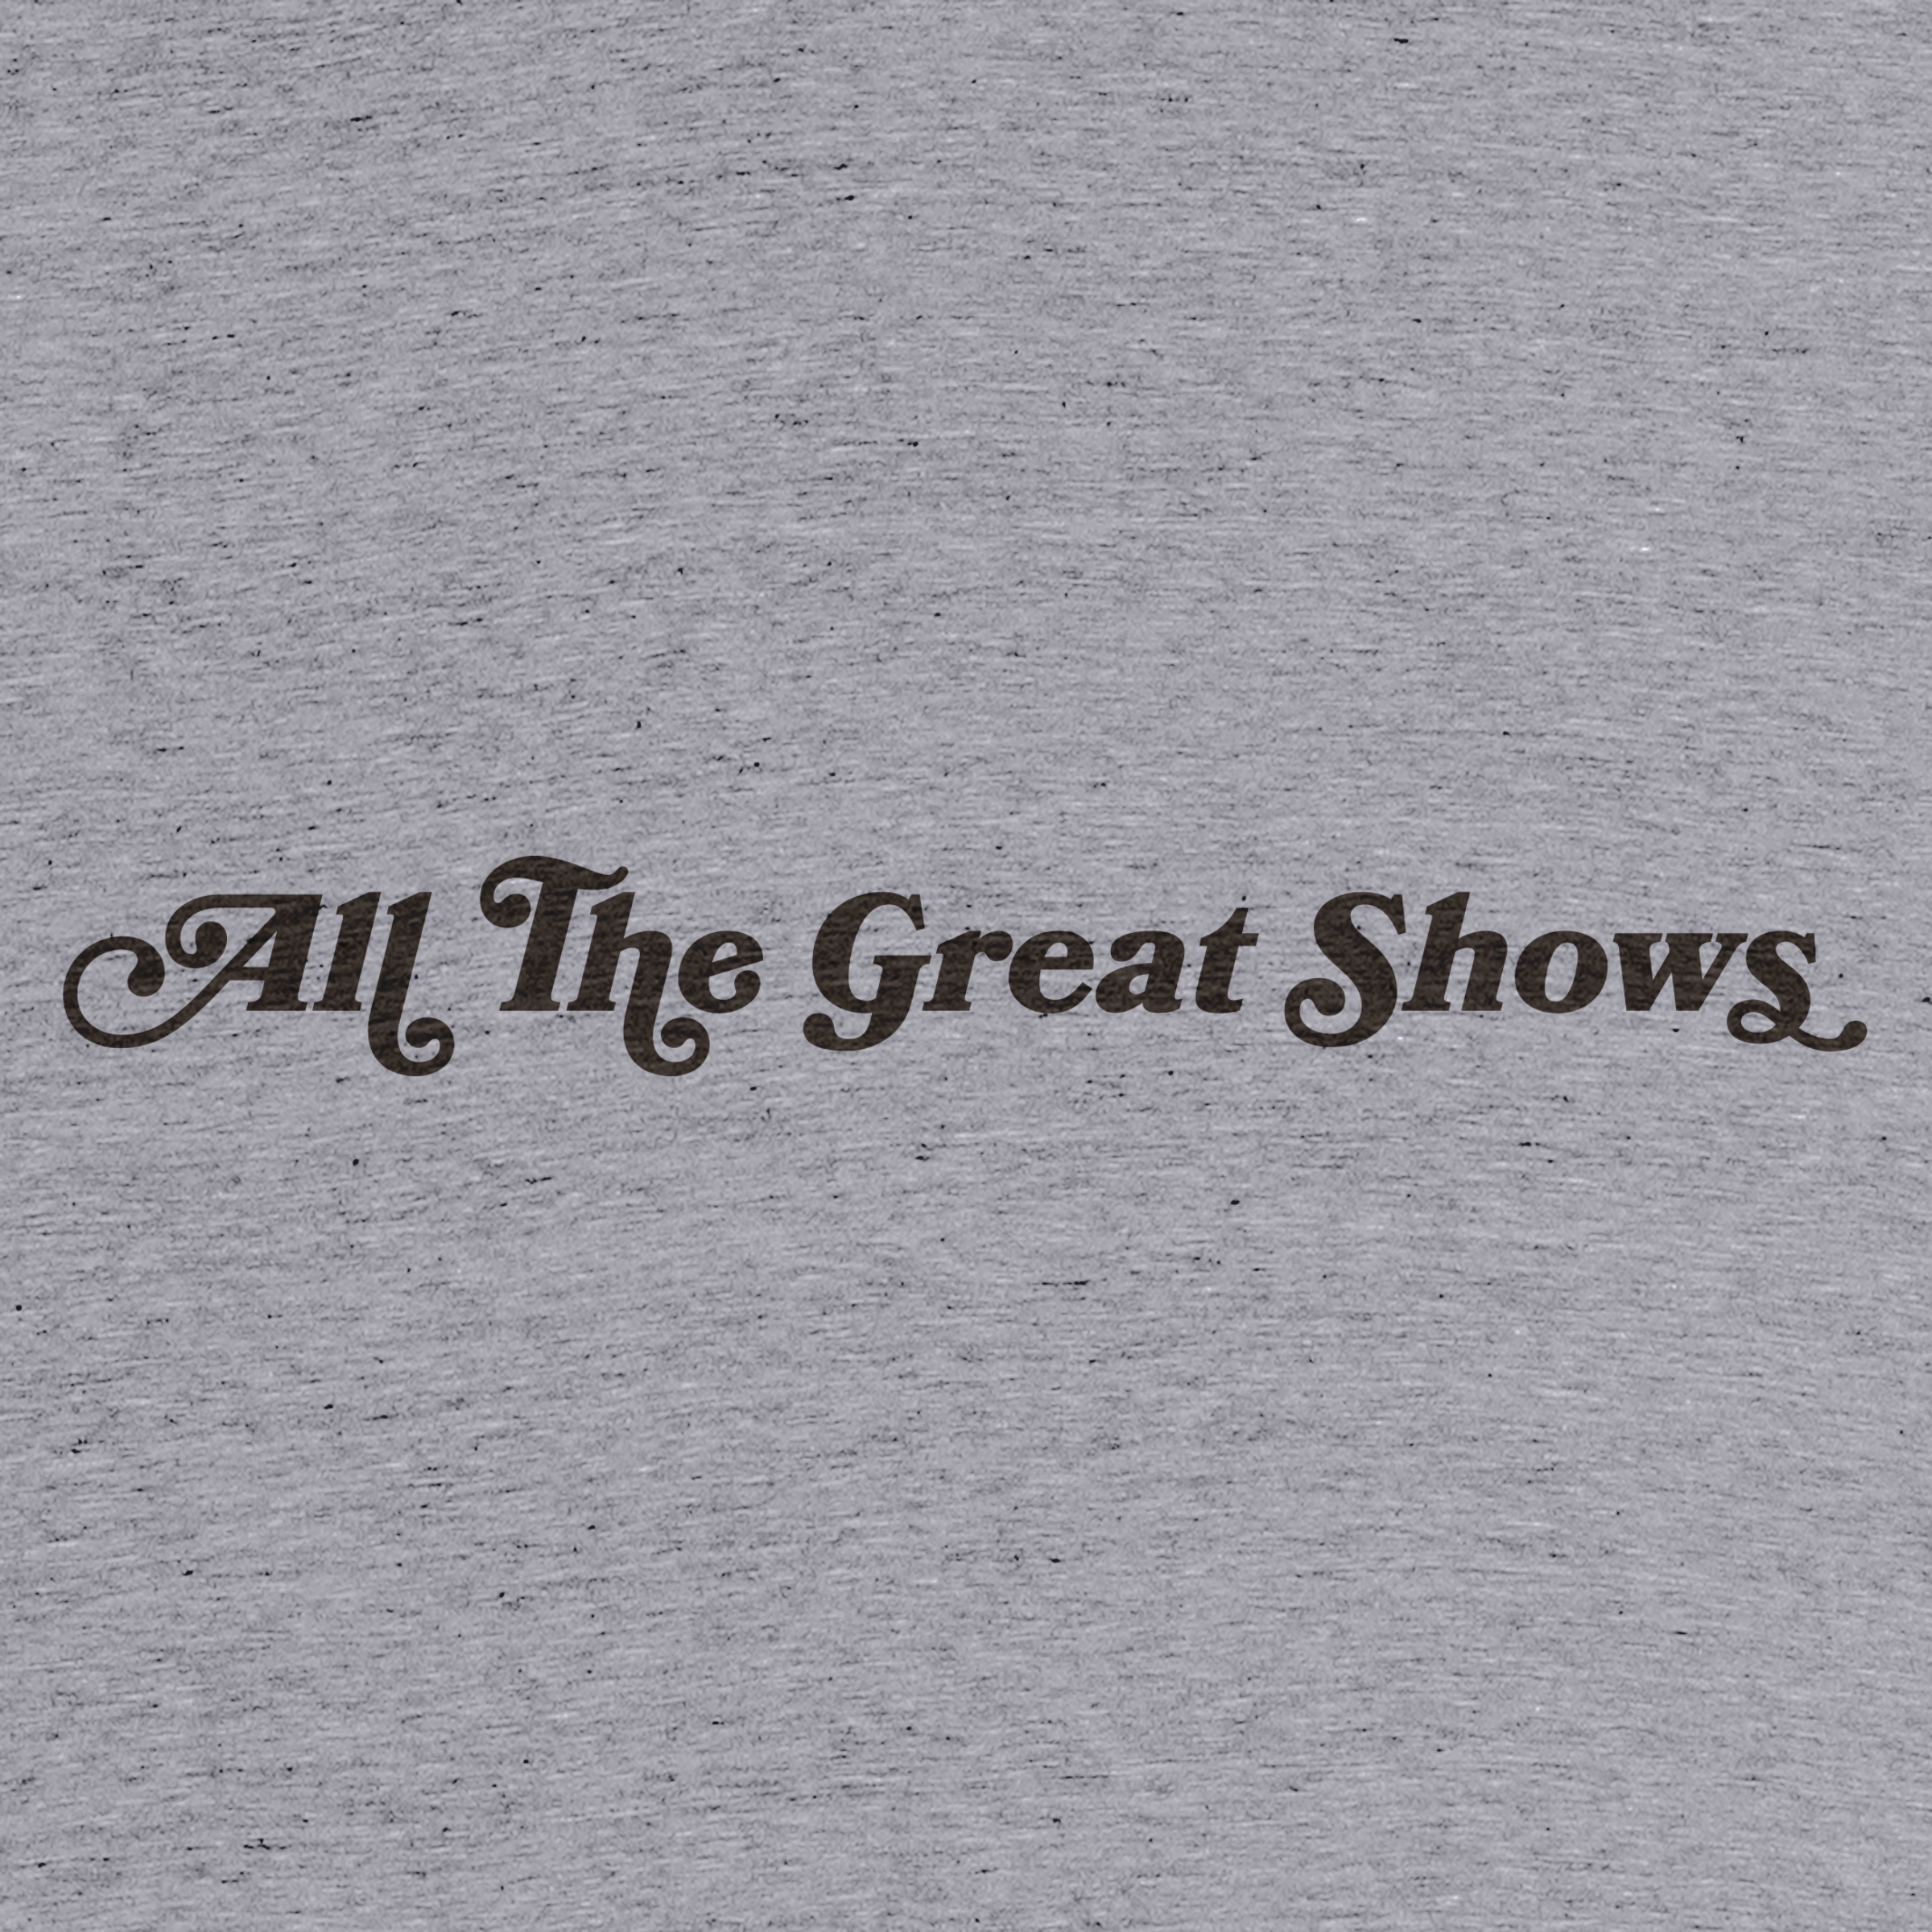 All The Great Shows